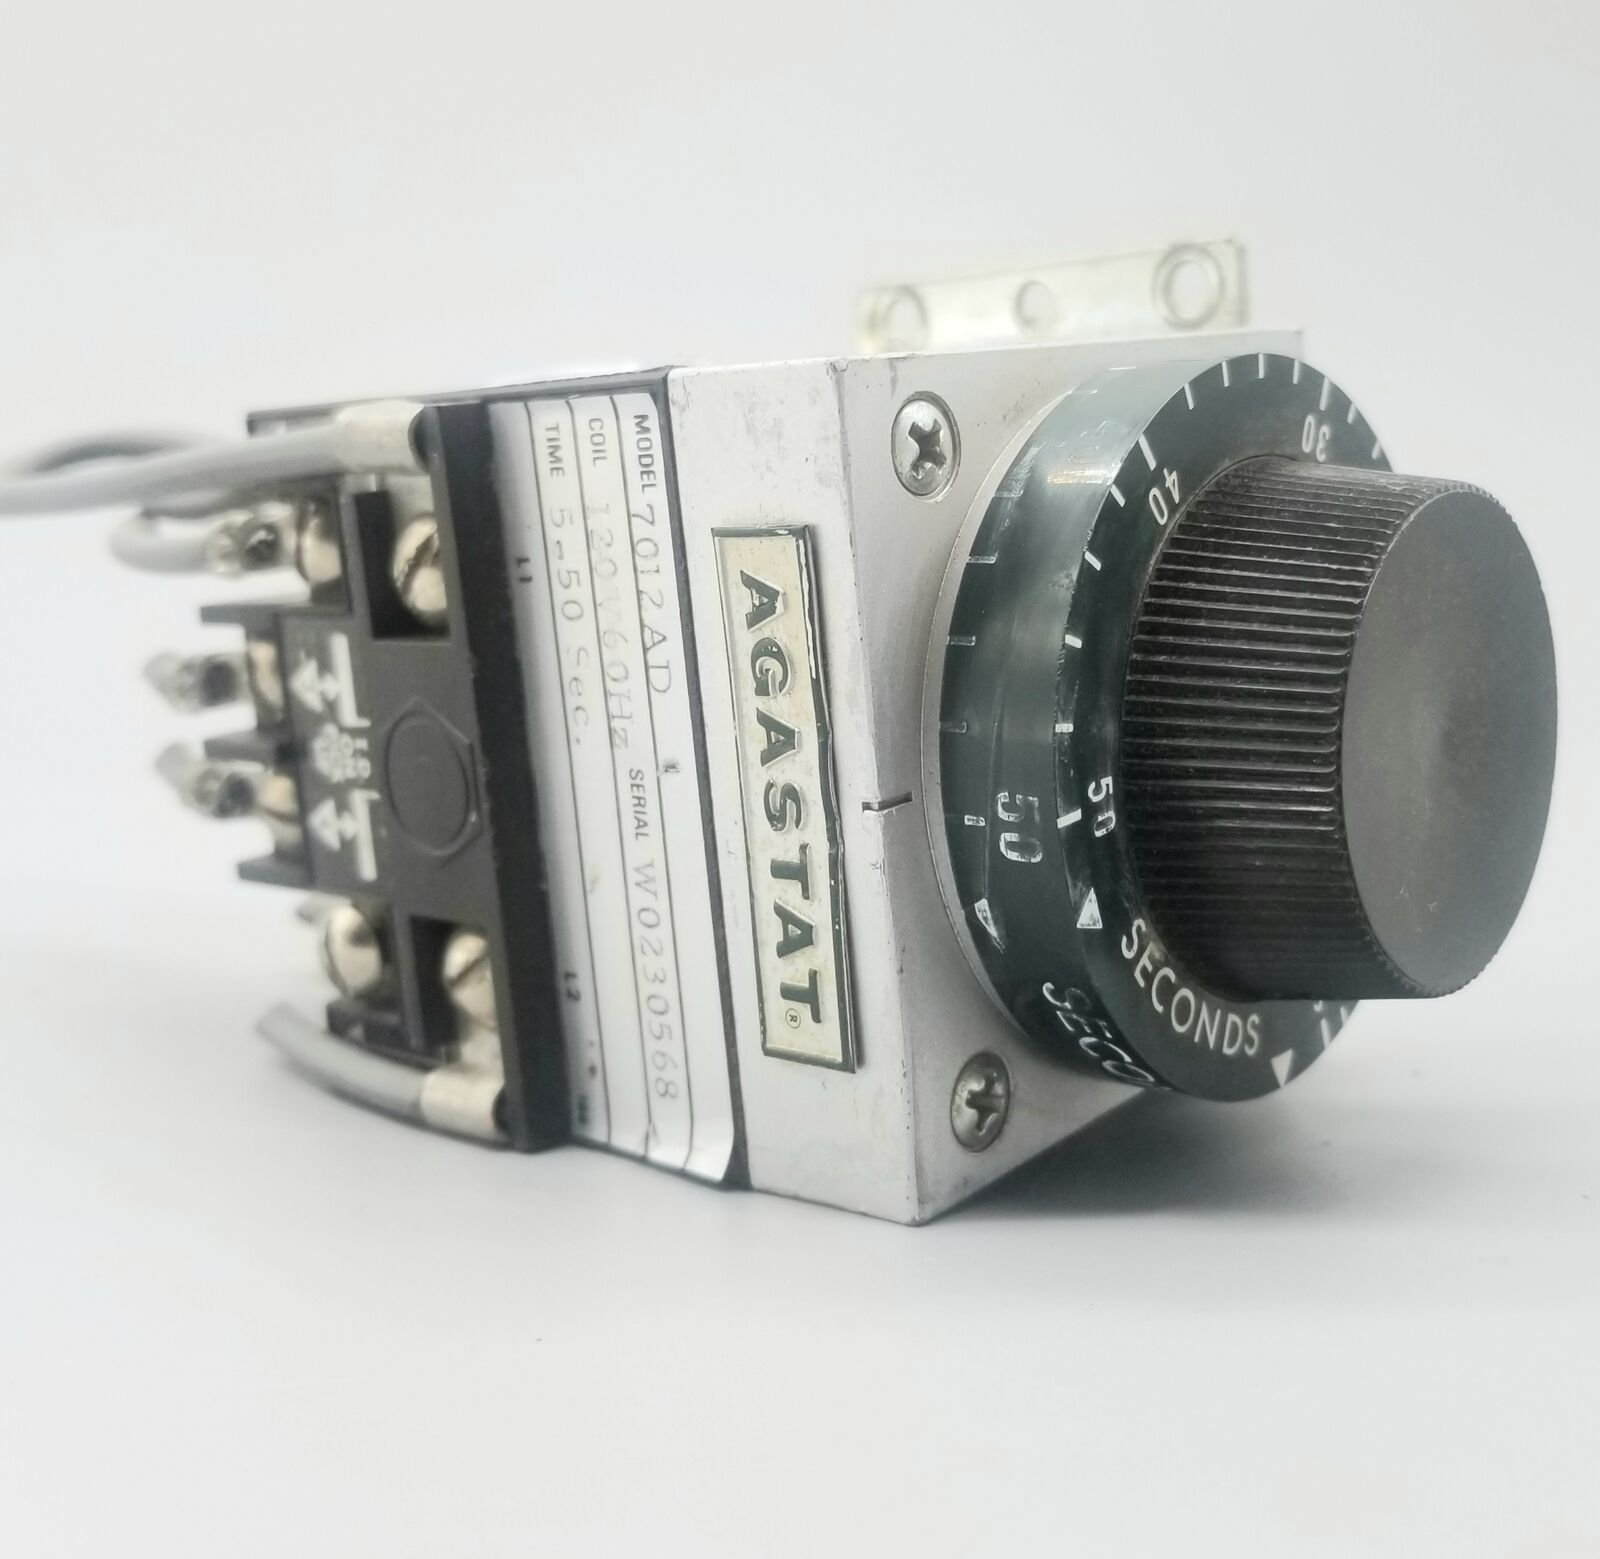 AGASTAT 7012AD Relay, Electropneumatic, Timing, On Delay, DPDT, Ctrl-V 120/110AC, 5-50 sec.